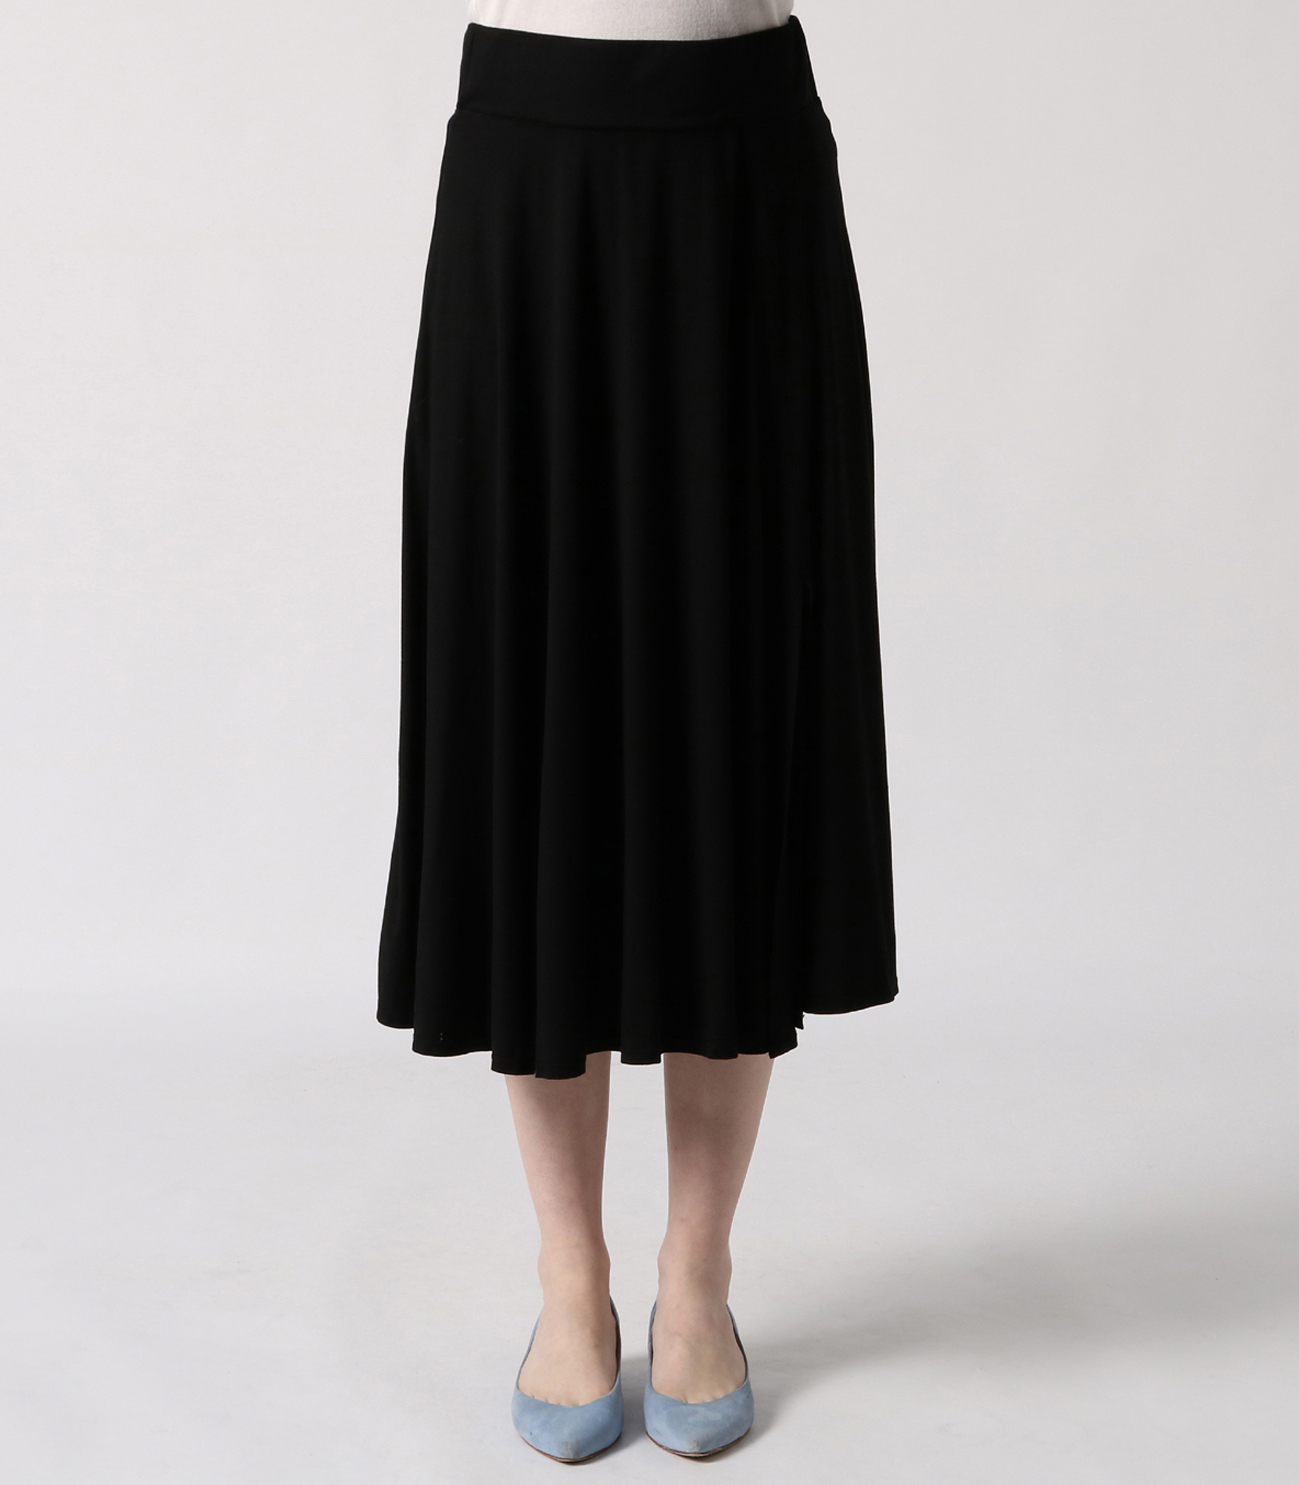 refined jersey flared skirt 詳細画像 black 2